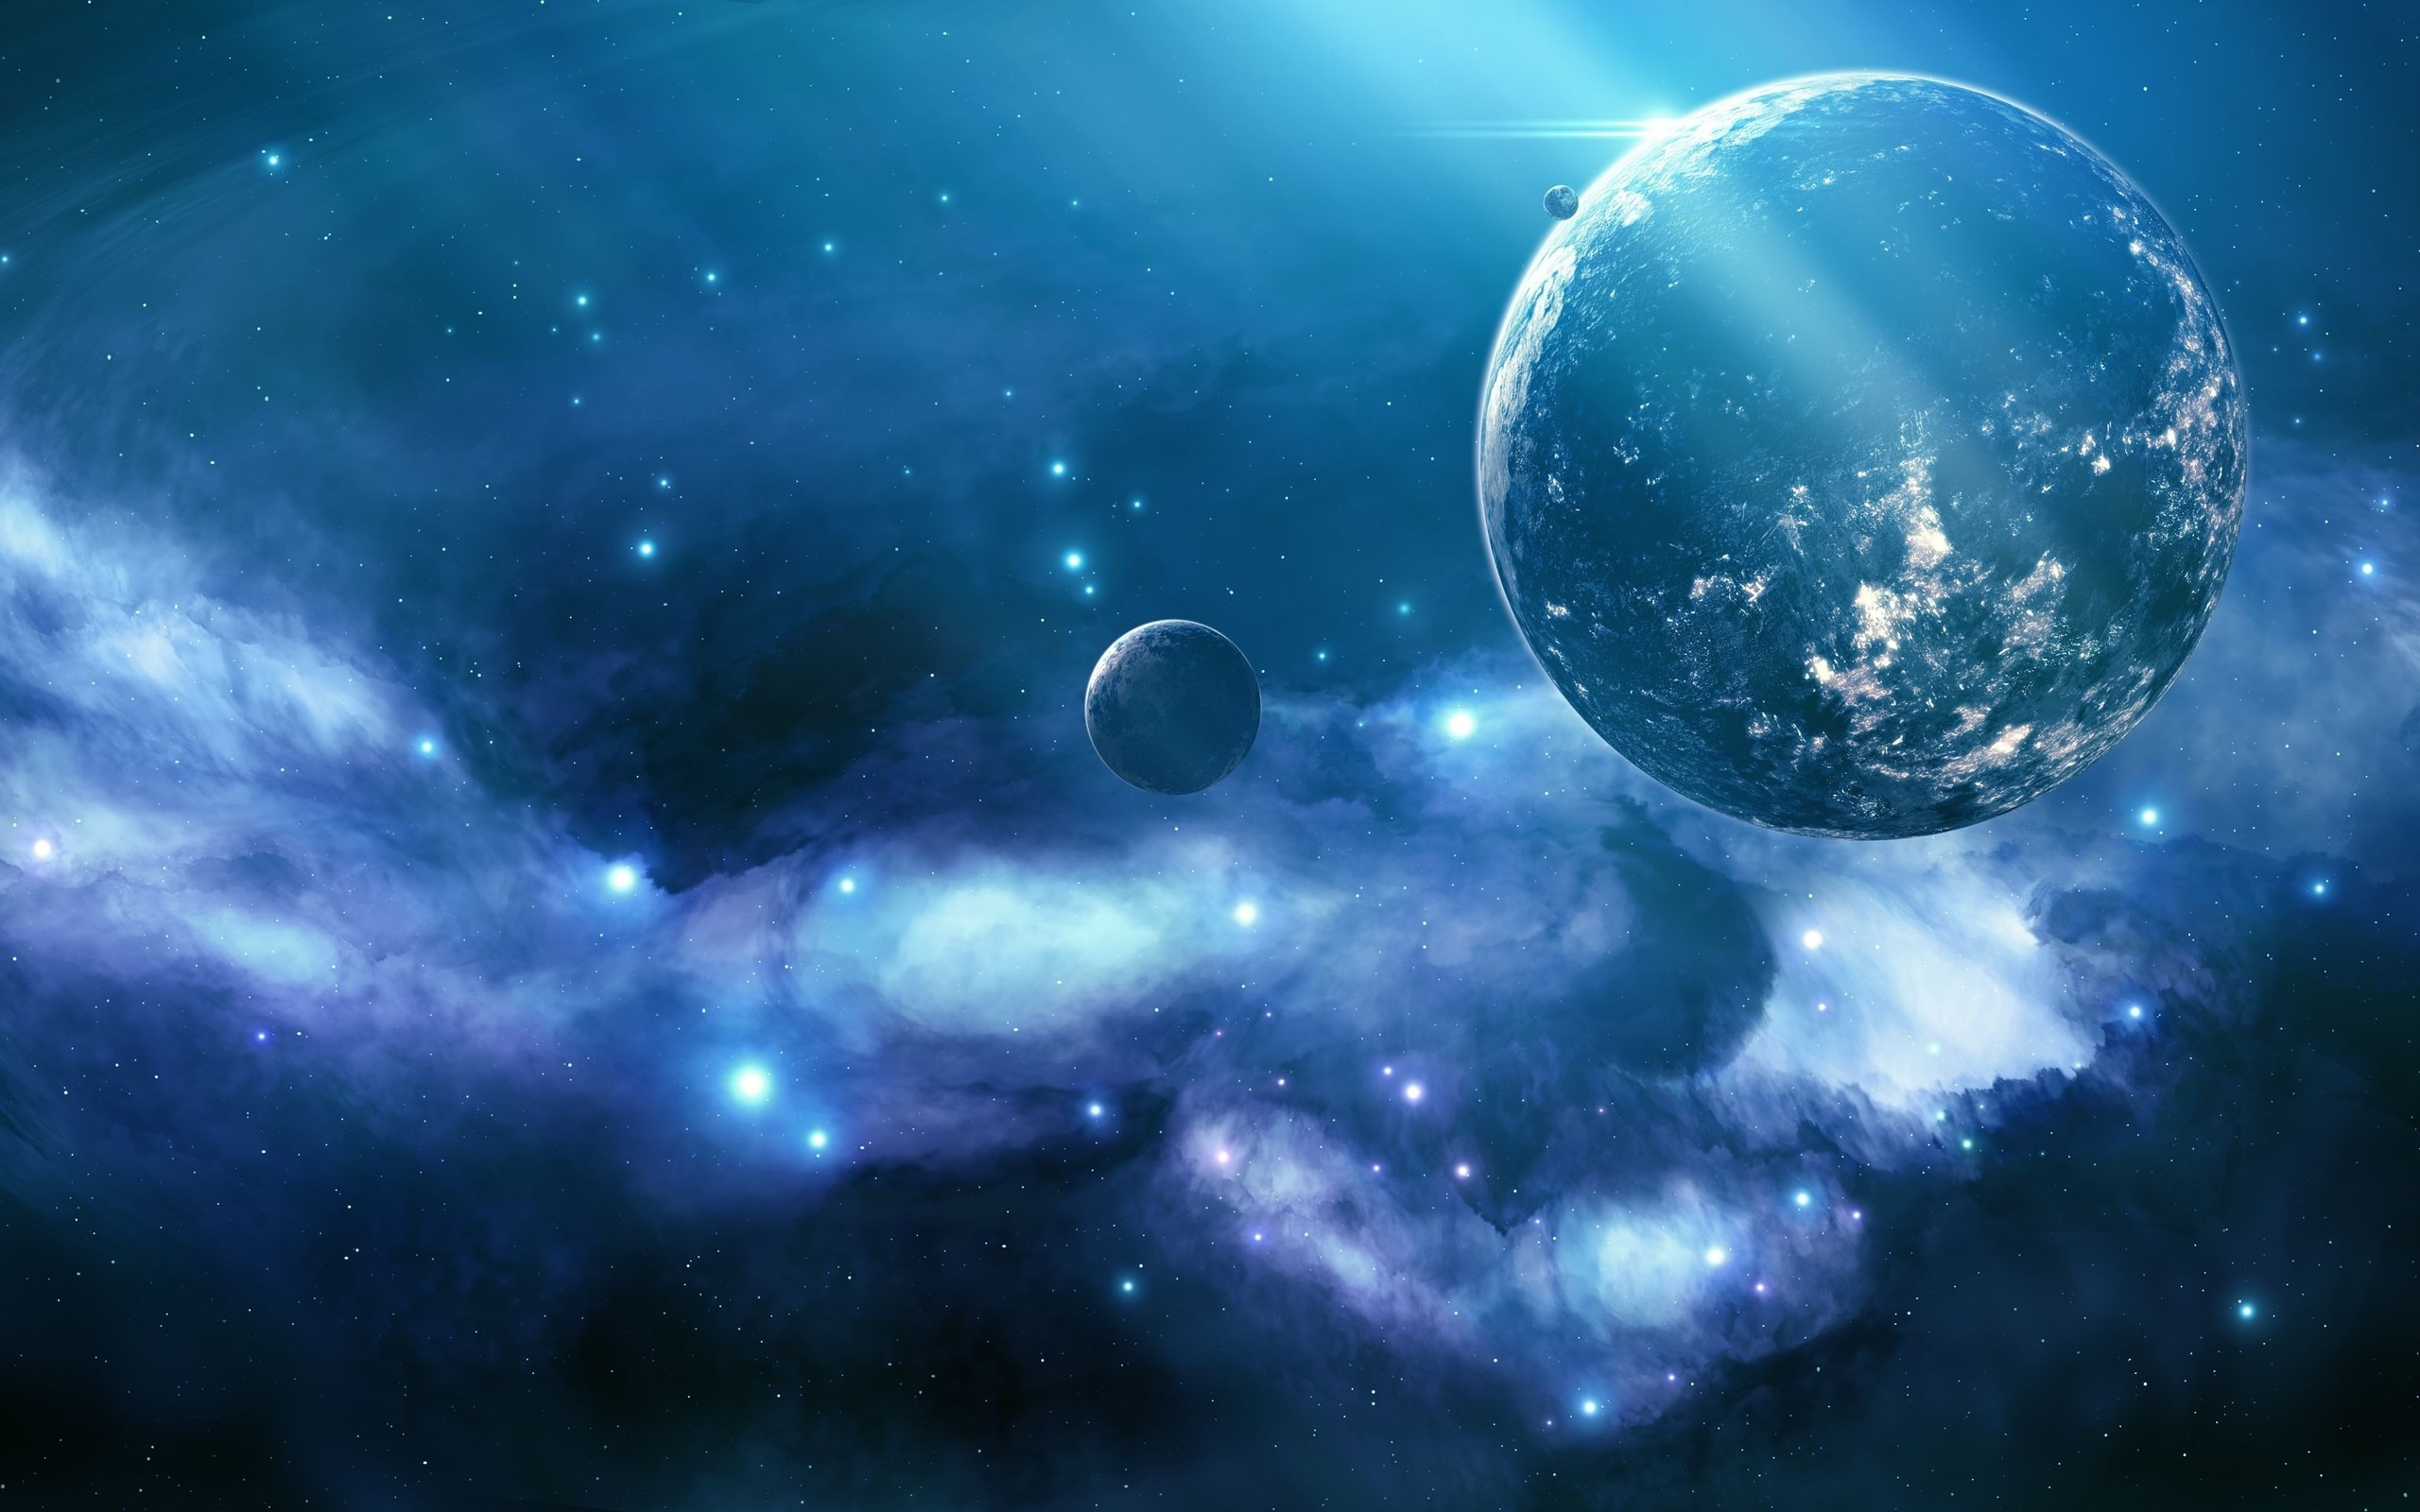 Category Space Gallery Wallpaper Page 0 MoshLab Wallpaper 2560x1600